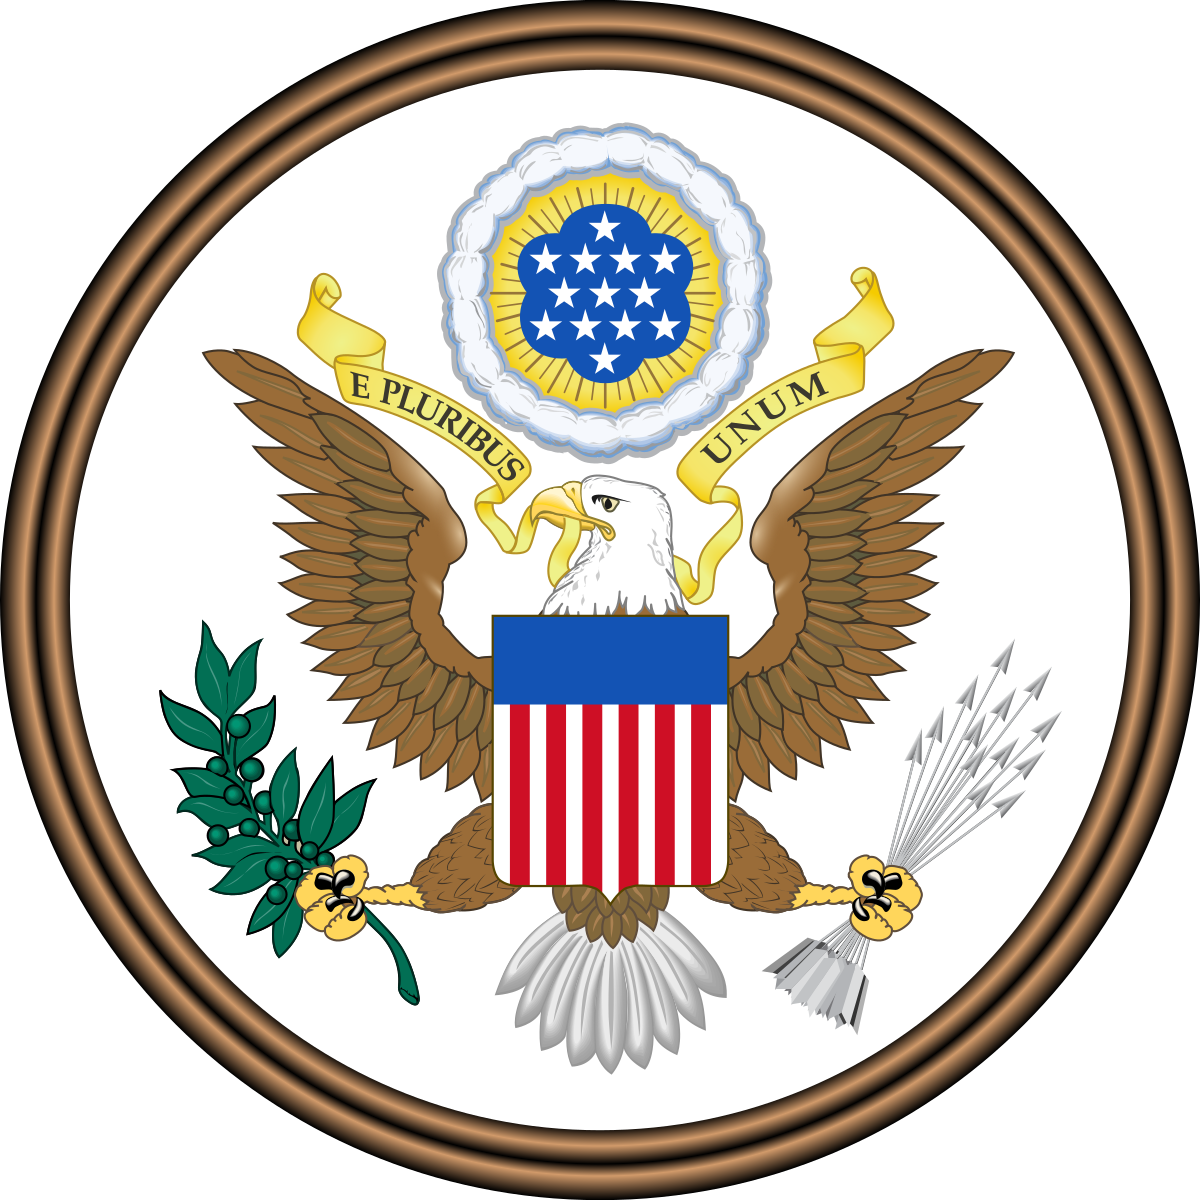 Government clipart government united states. Why is the federal